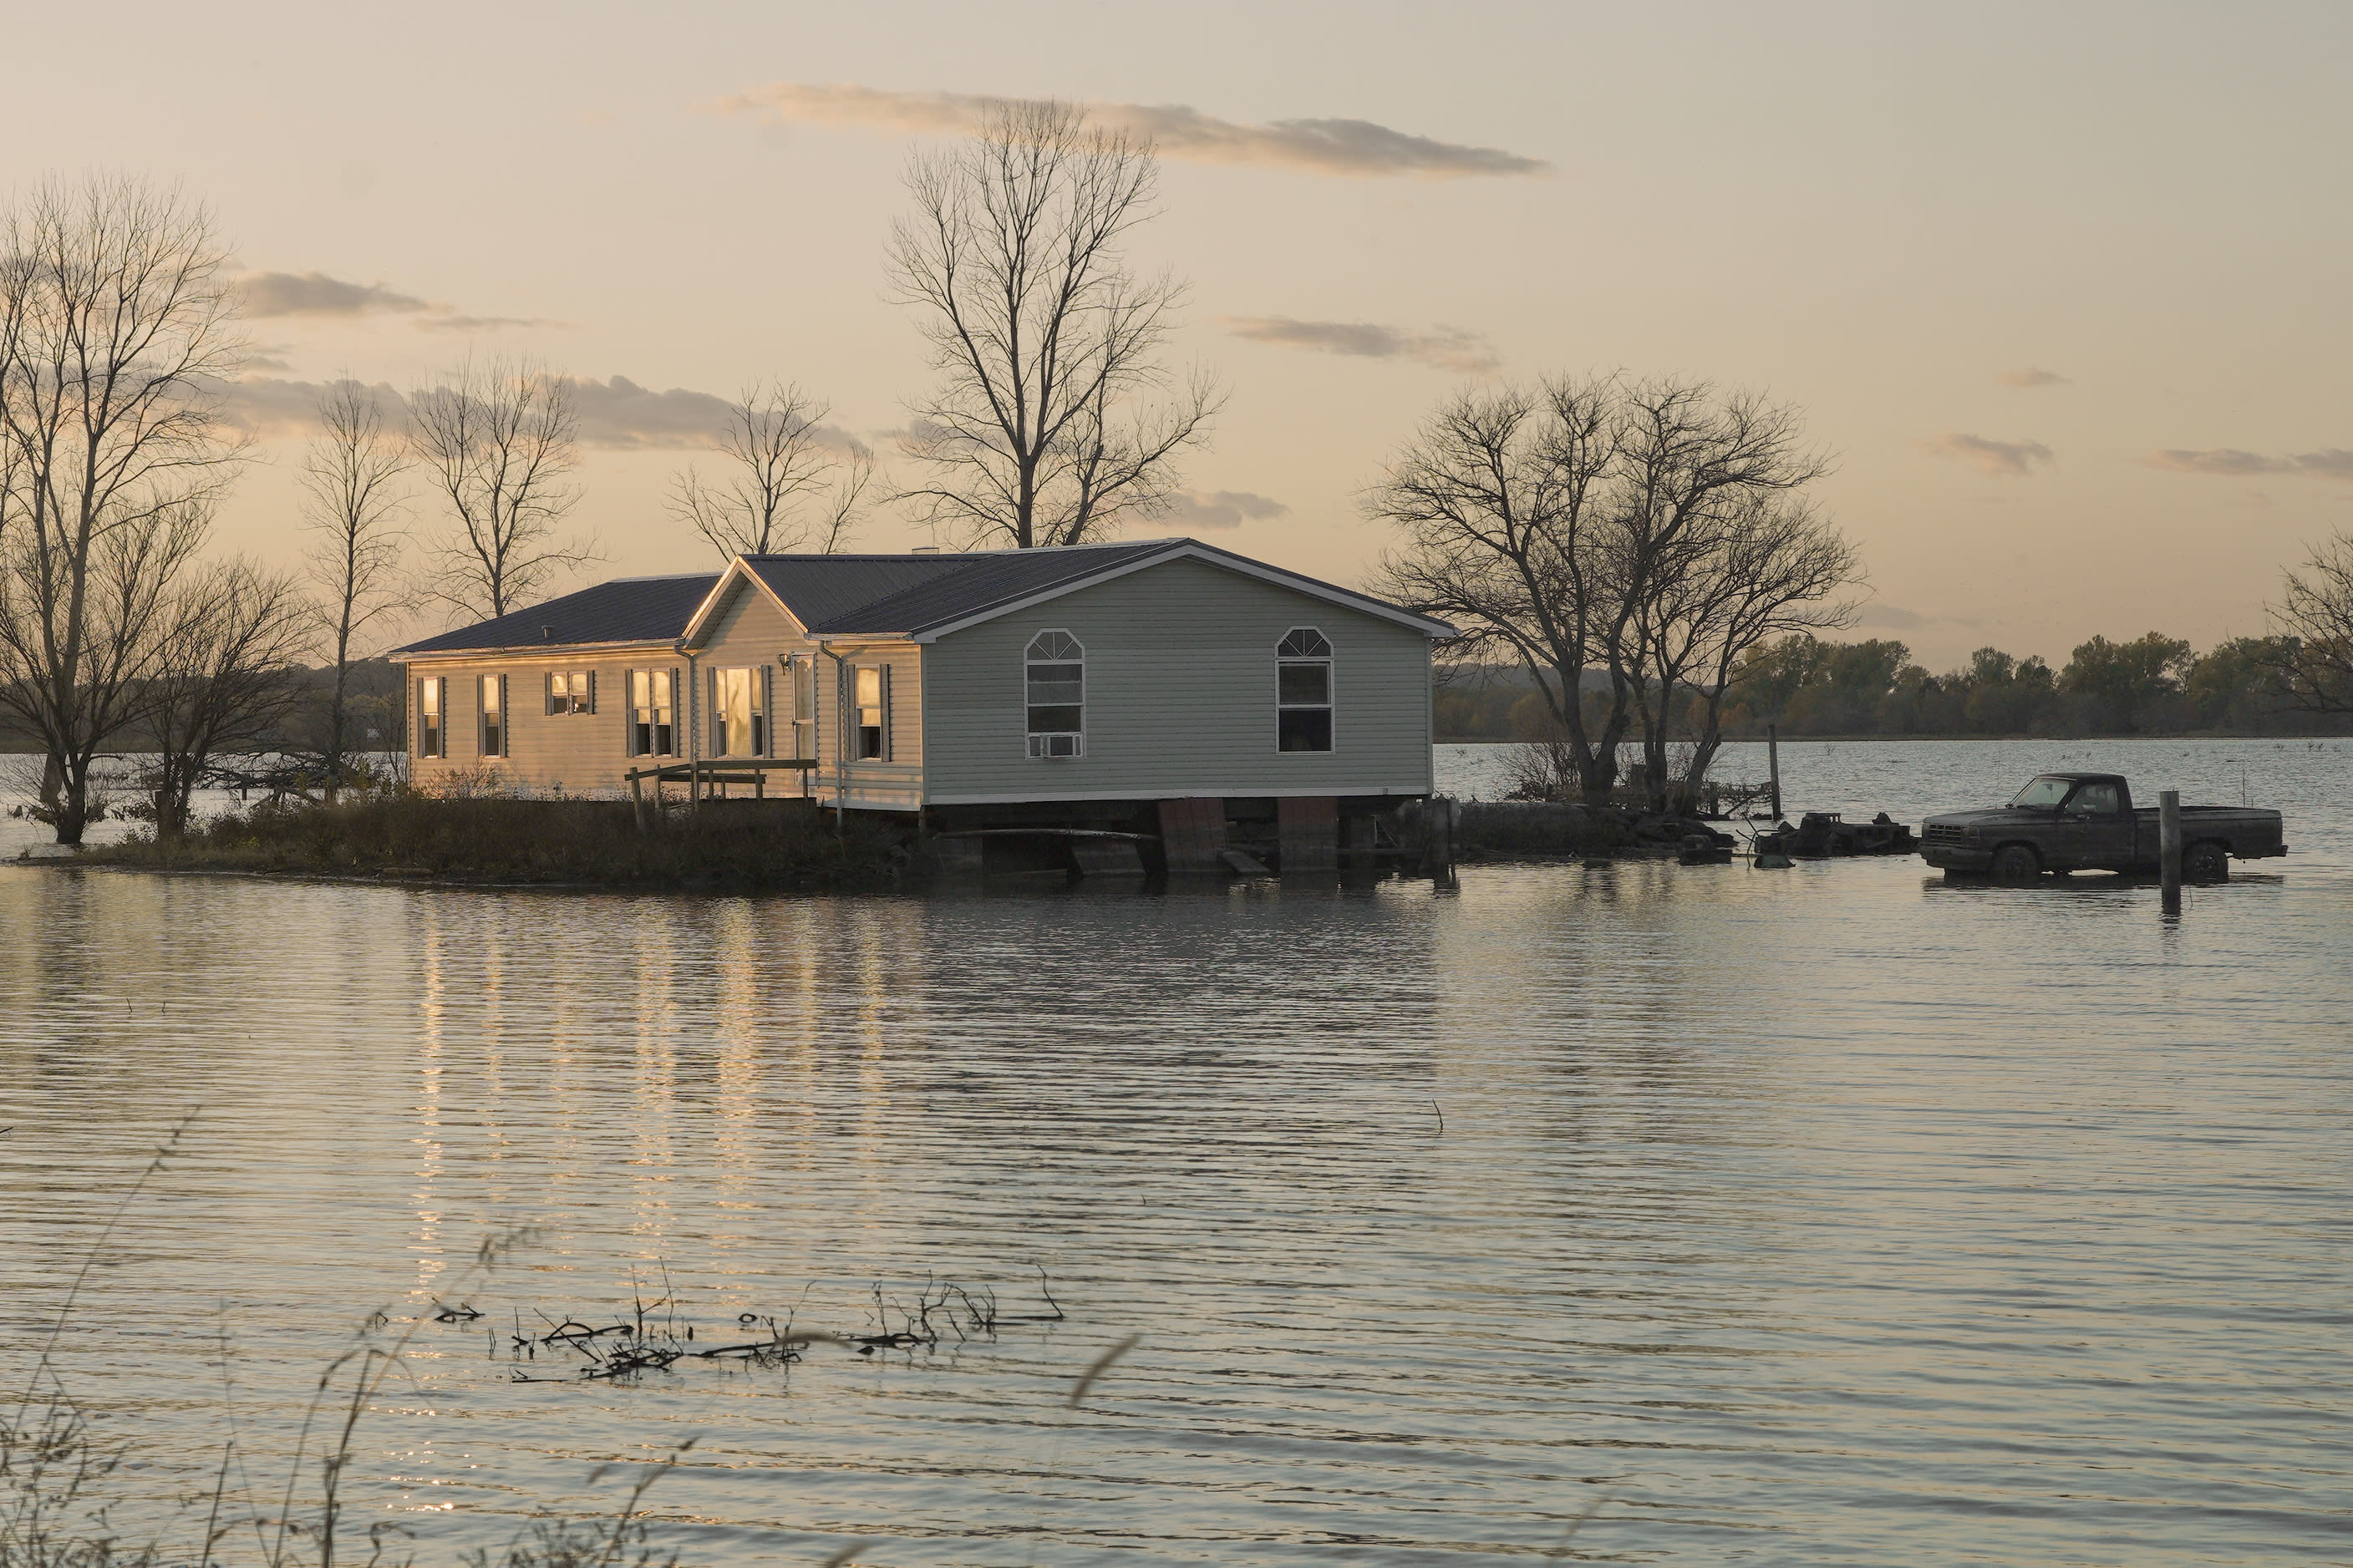 In this Tuesday, Oct. 22, 2019 photo, a home is surrounded by floodwaters in Bartlett, Iowa. Flooding along the Missouri River has stretched on for seven months in places and could endure through the winter, leaving some Upper Midwest farmland and possibly some homes encased in ice. (AP Photo/Nati Harnik)